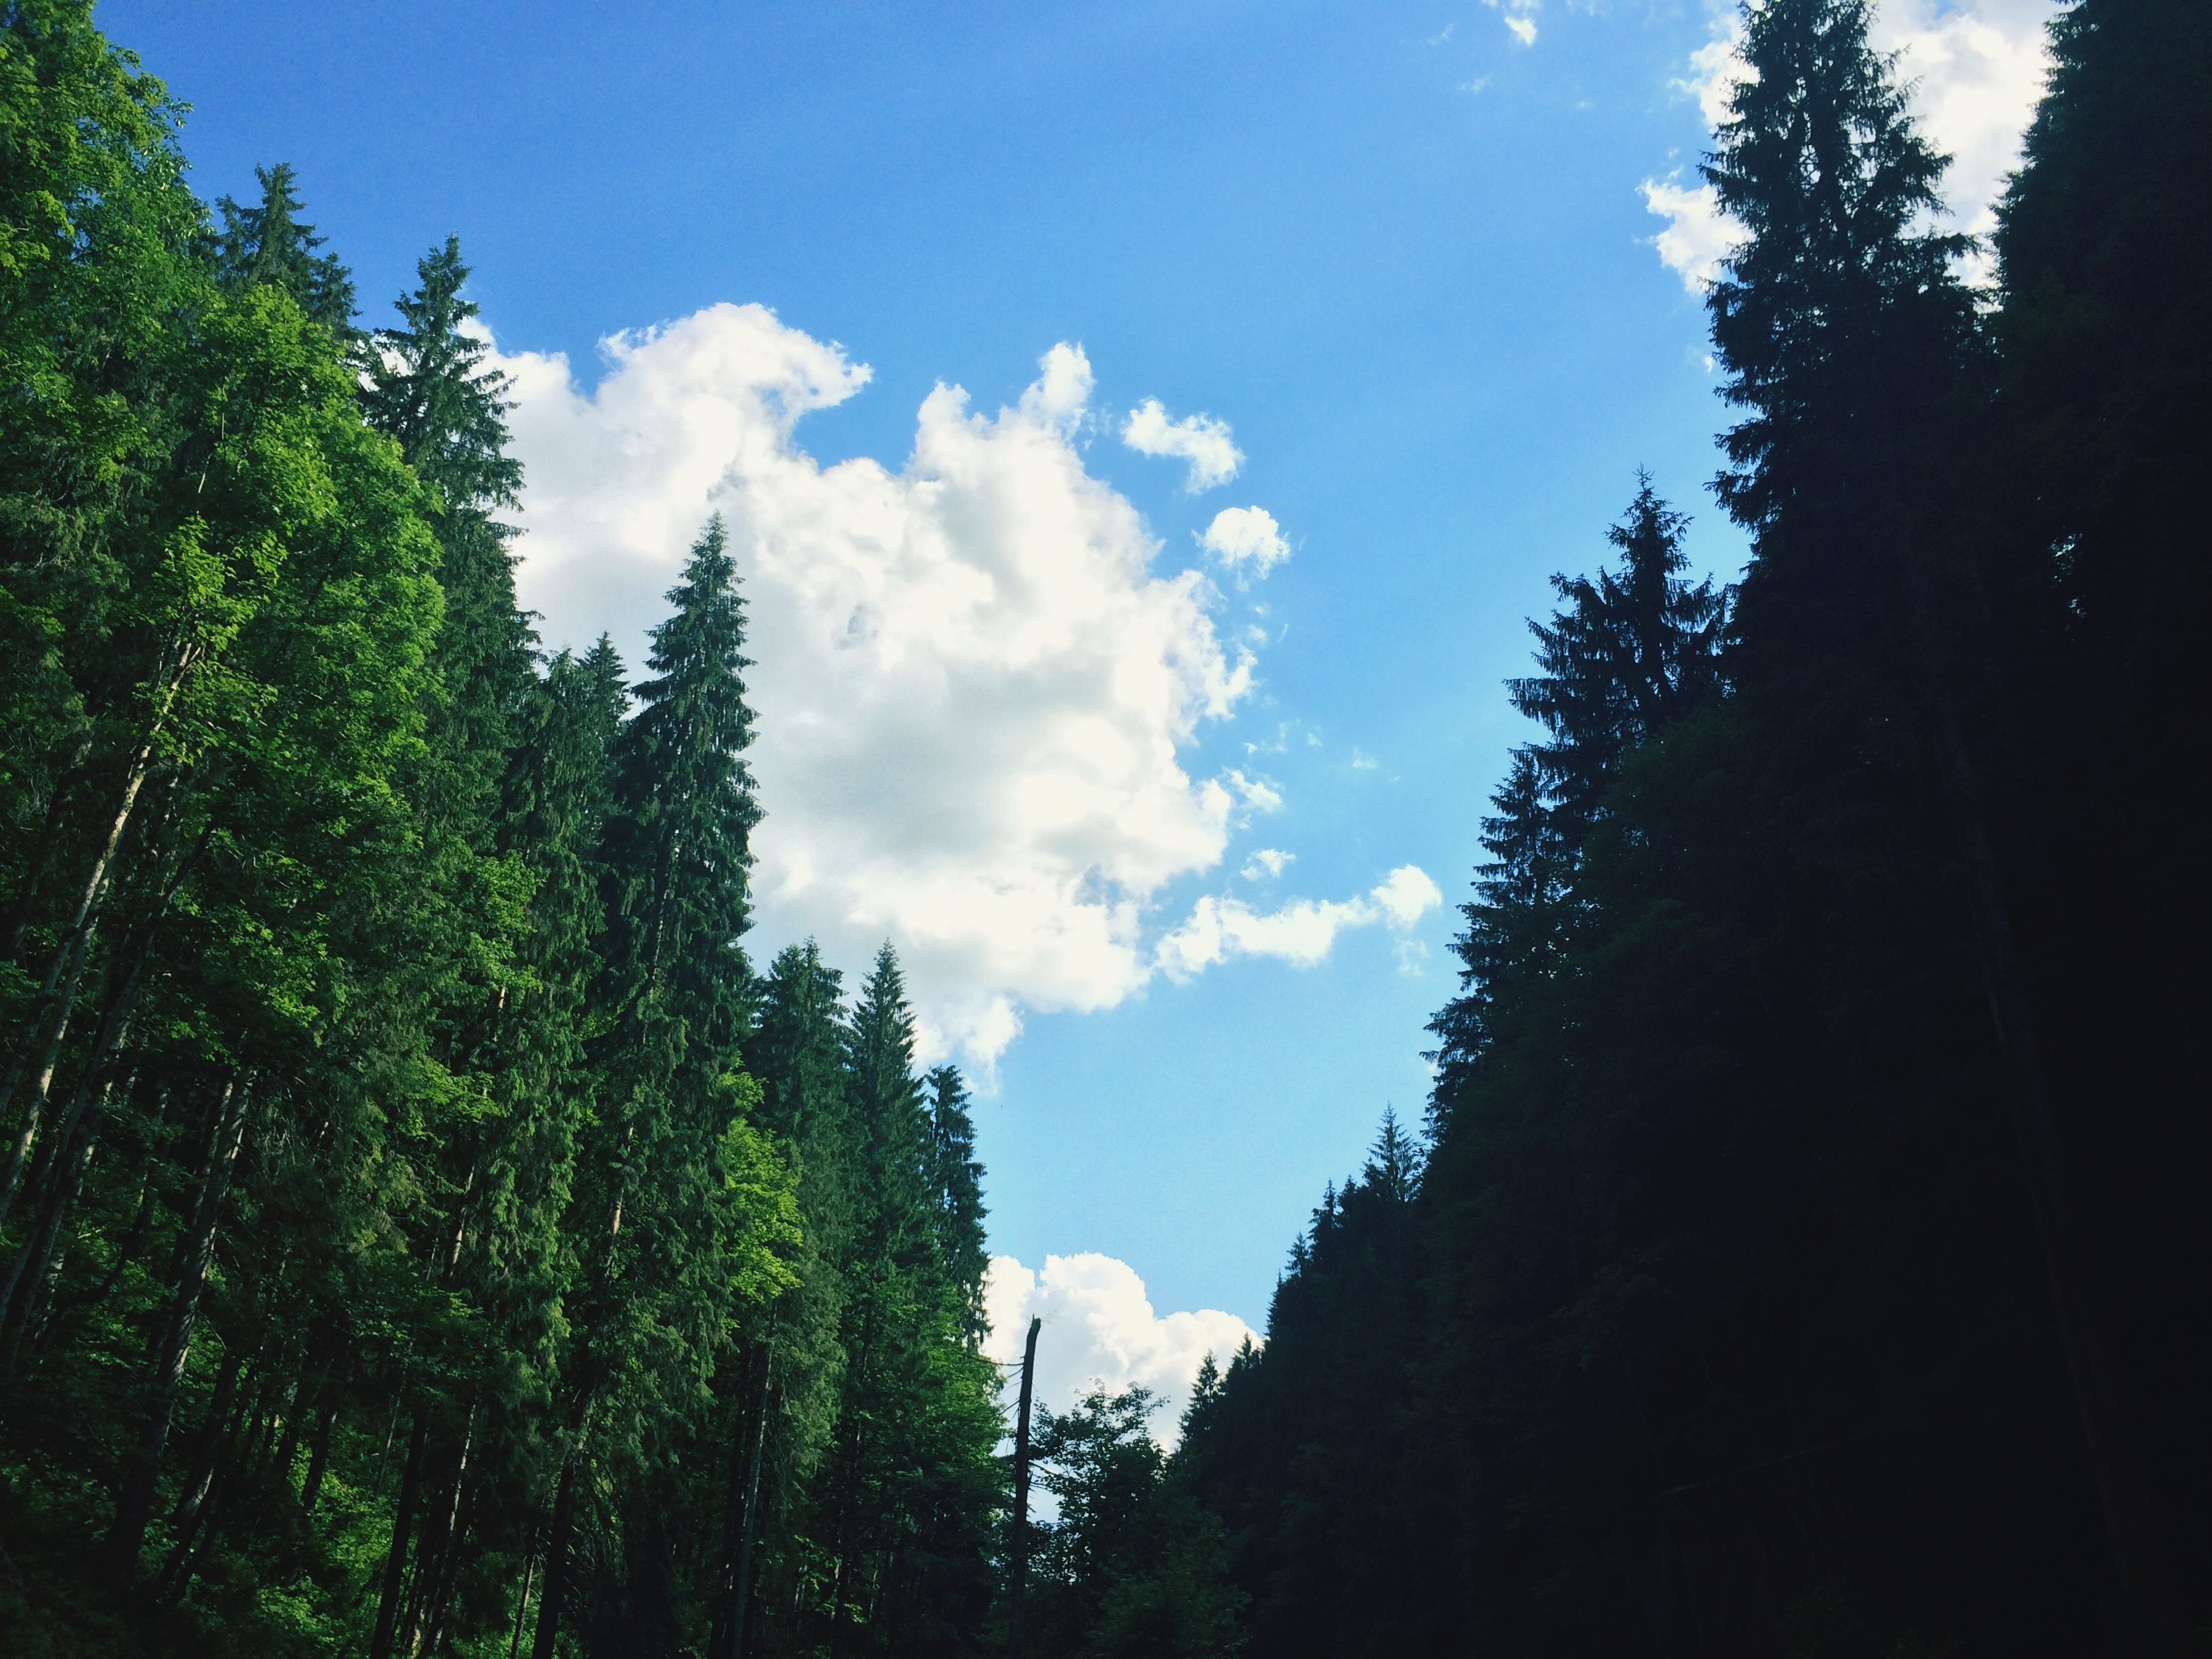 tree, sky, tranquility, low angle view, growth, tranquil scene, beauty in nature, nature, scenics, forest, blue, cloud, cloud - sky, sunlight, day, outdoors, no people, non-urban scene, idyllic, green color